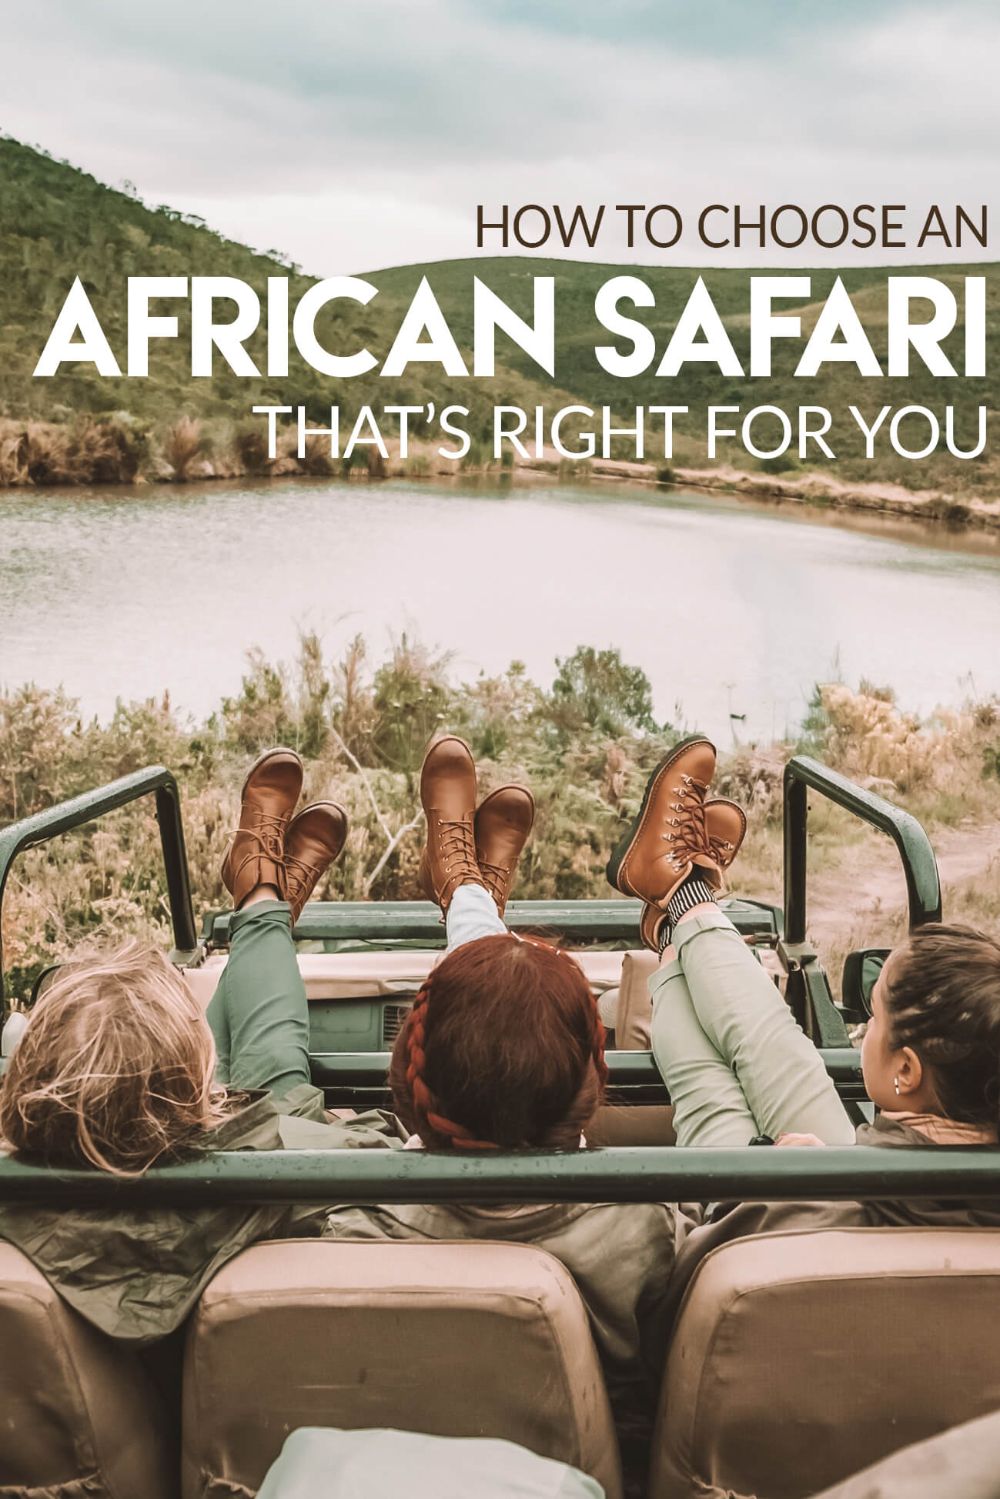 How to Choose an African Safari (That's Right for You) • The Blonde Abroad